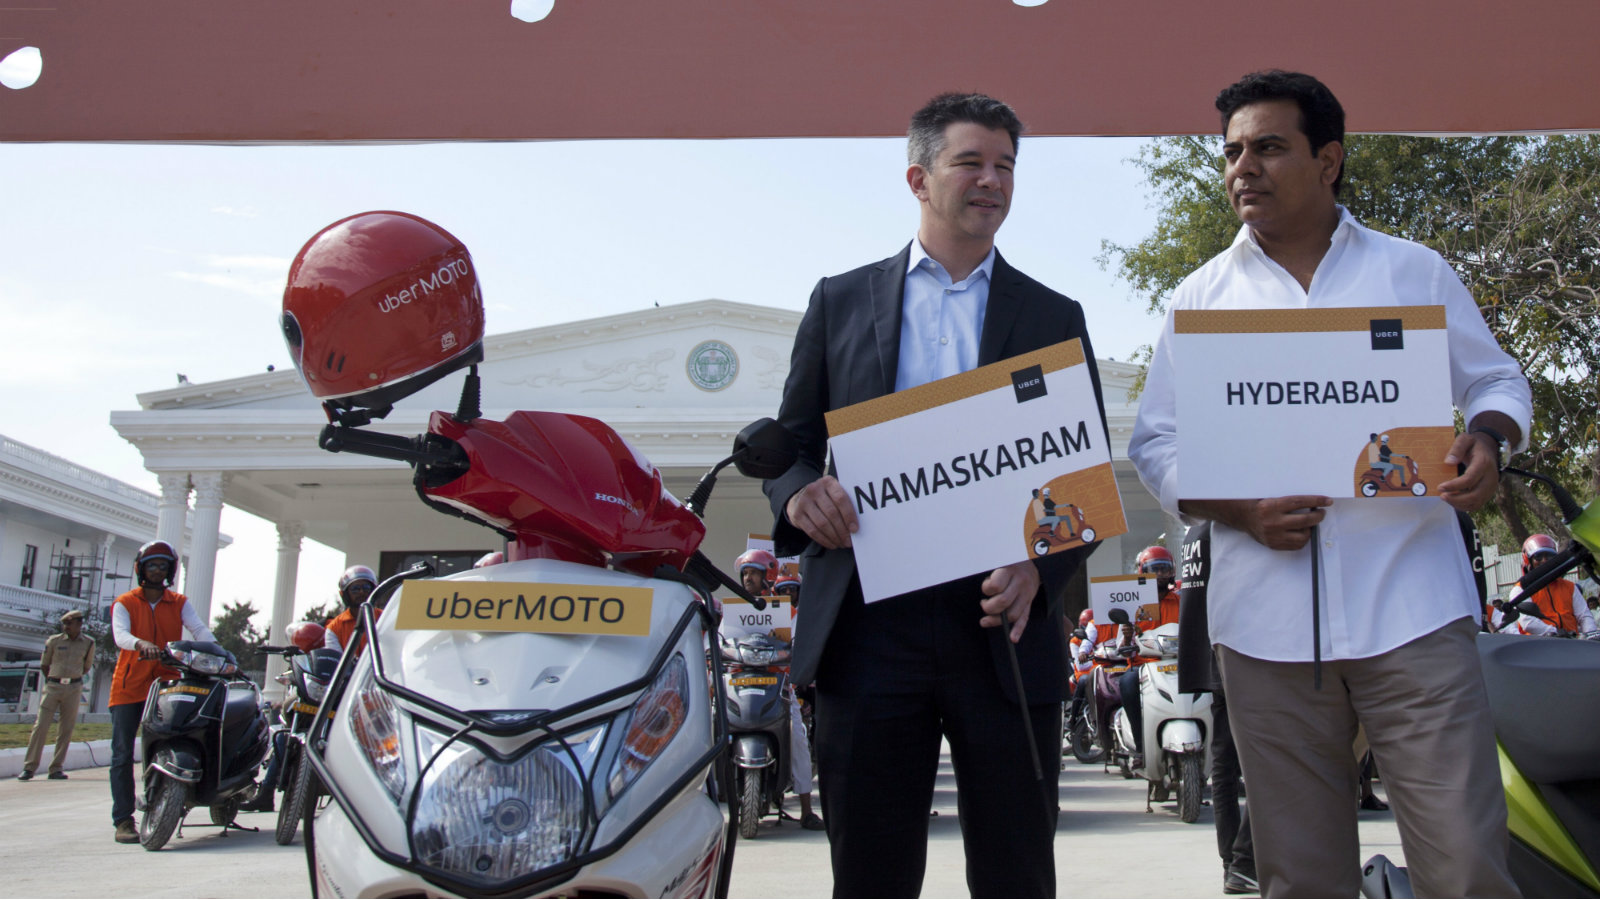 Uber CEO Travis Kalanick, center, poses with Telangana state minister for Information and Technology, Municipal Administration and Urban Development, K T Rama Rao, right, during the launch of Uber's bike-sharing product, uberMOTO, in Hyderabad, India, Tuesday, Dec. 13, 2016.